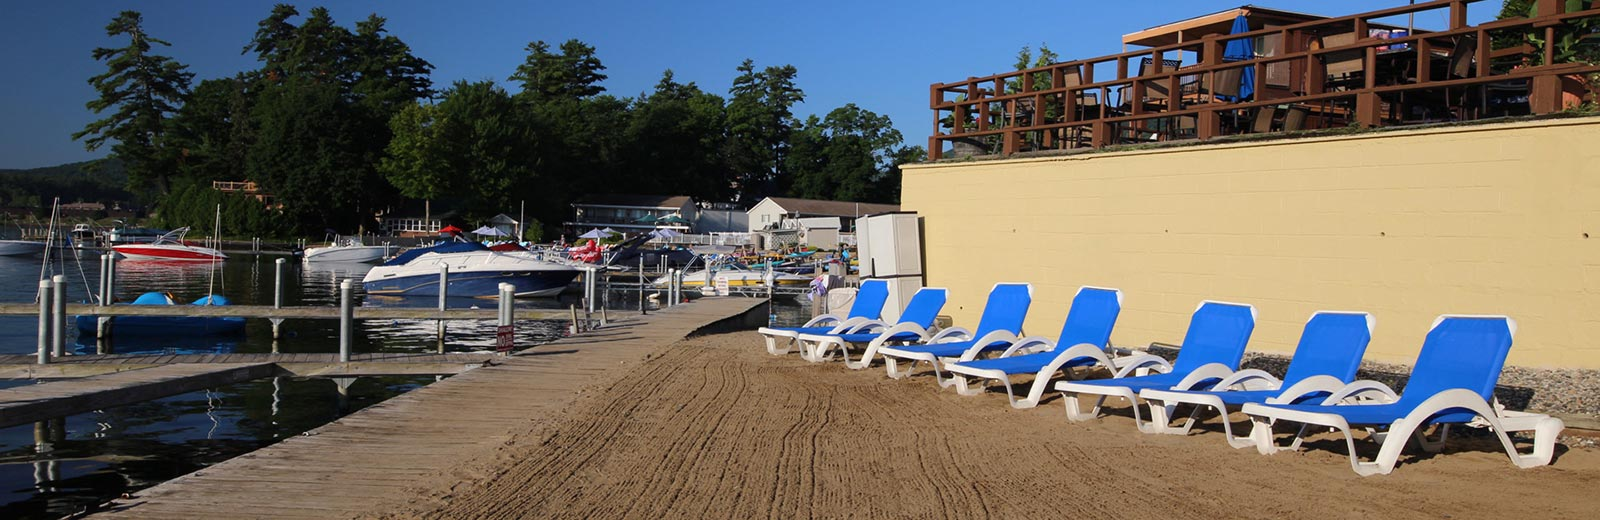 Blue chairs line the beach